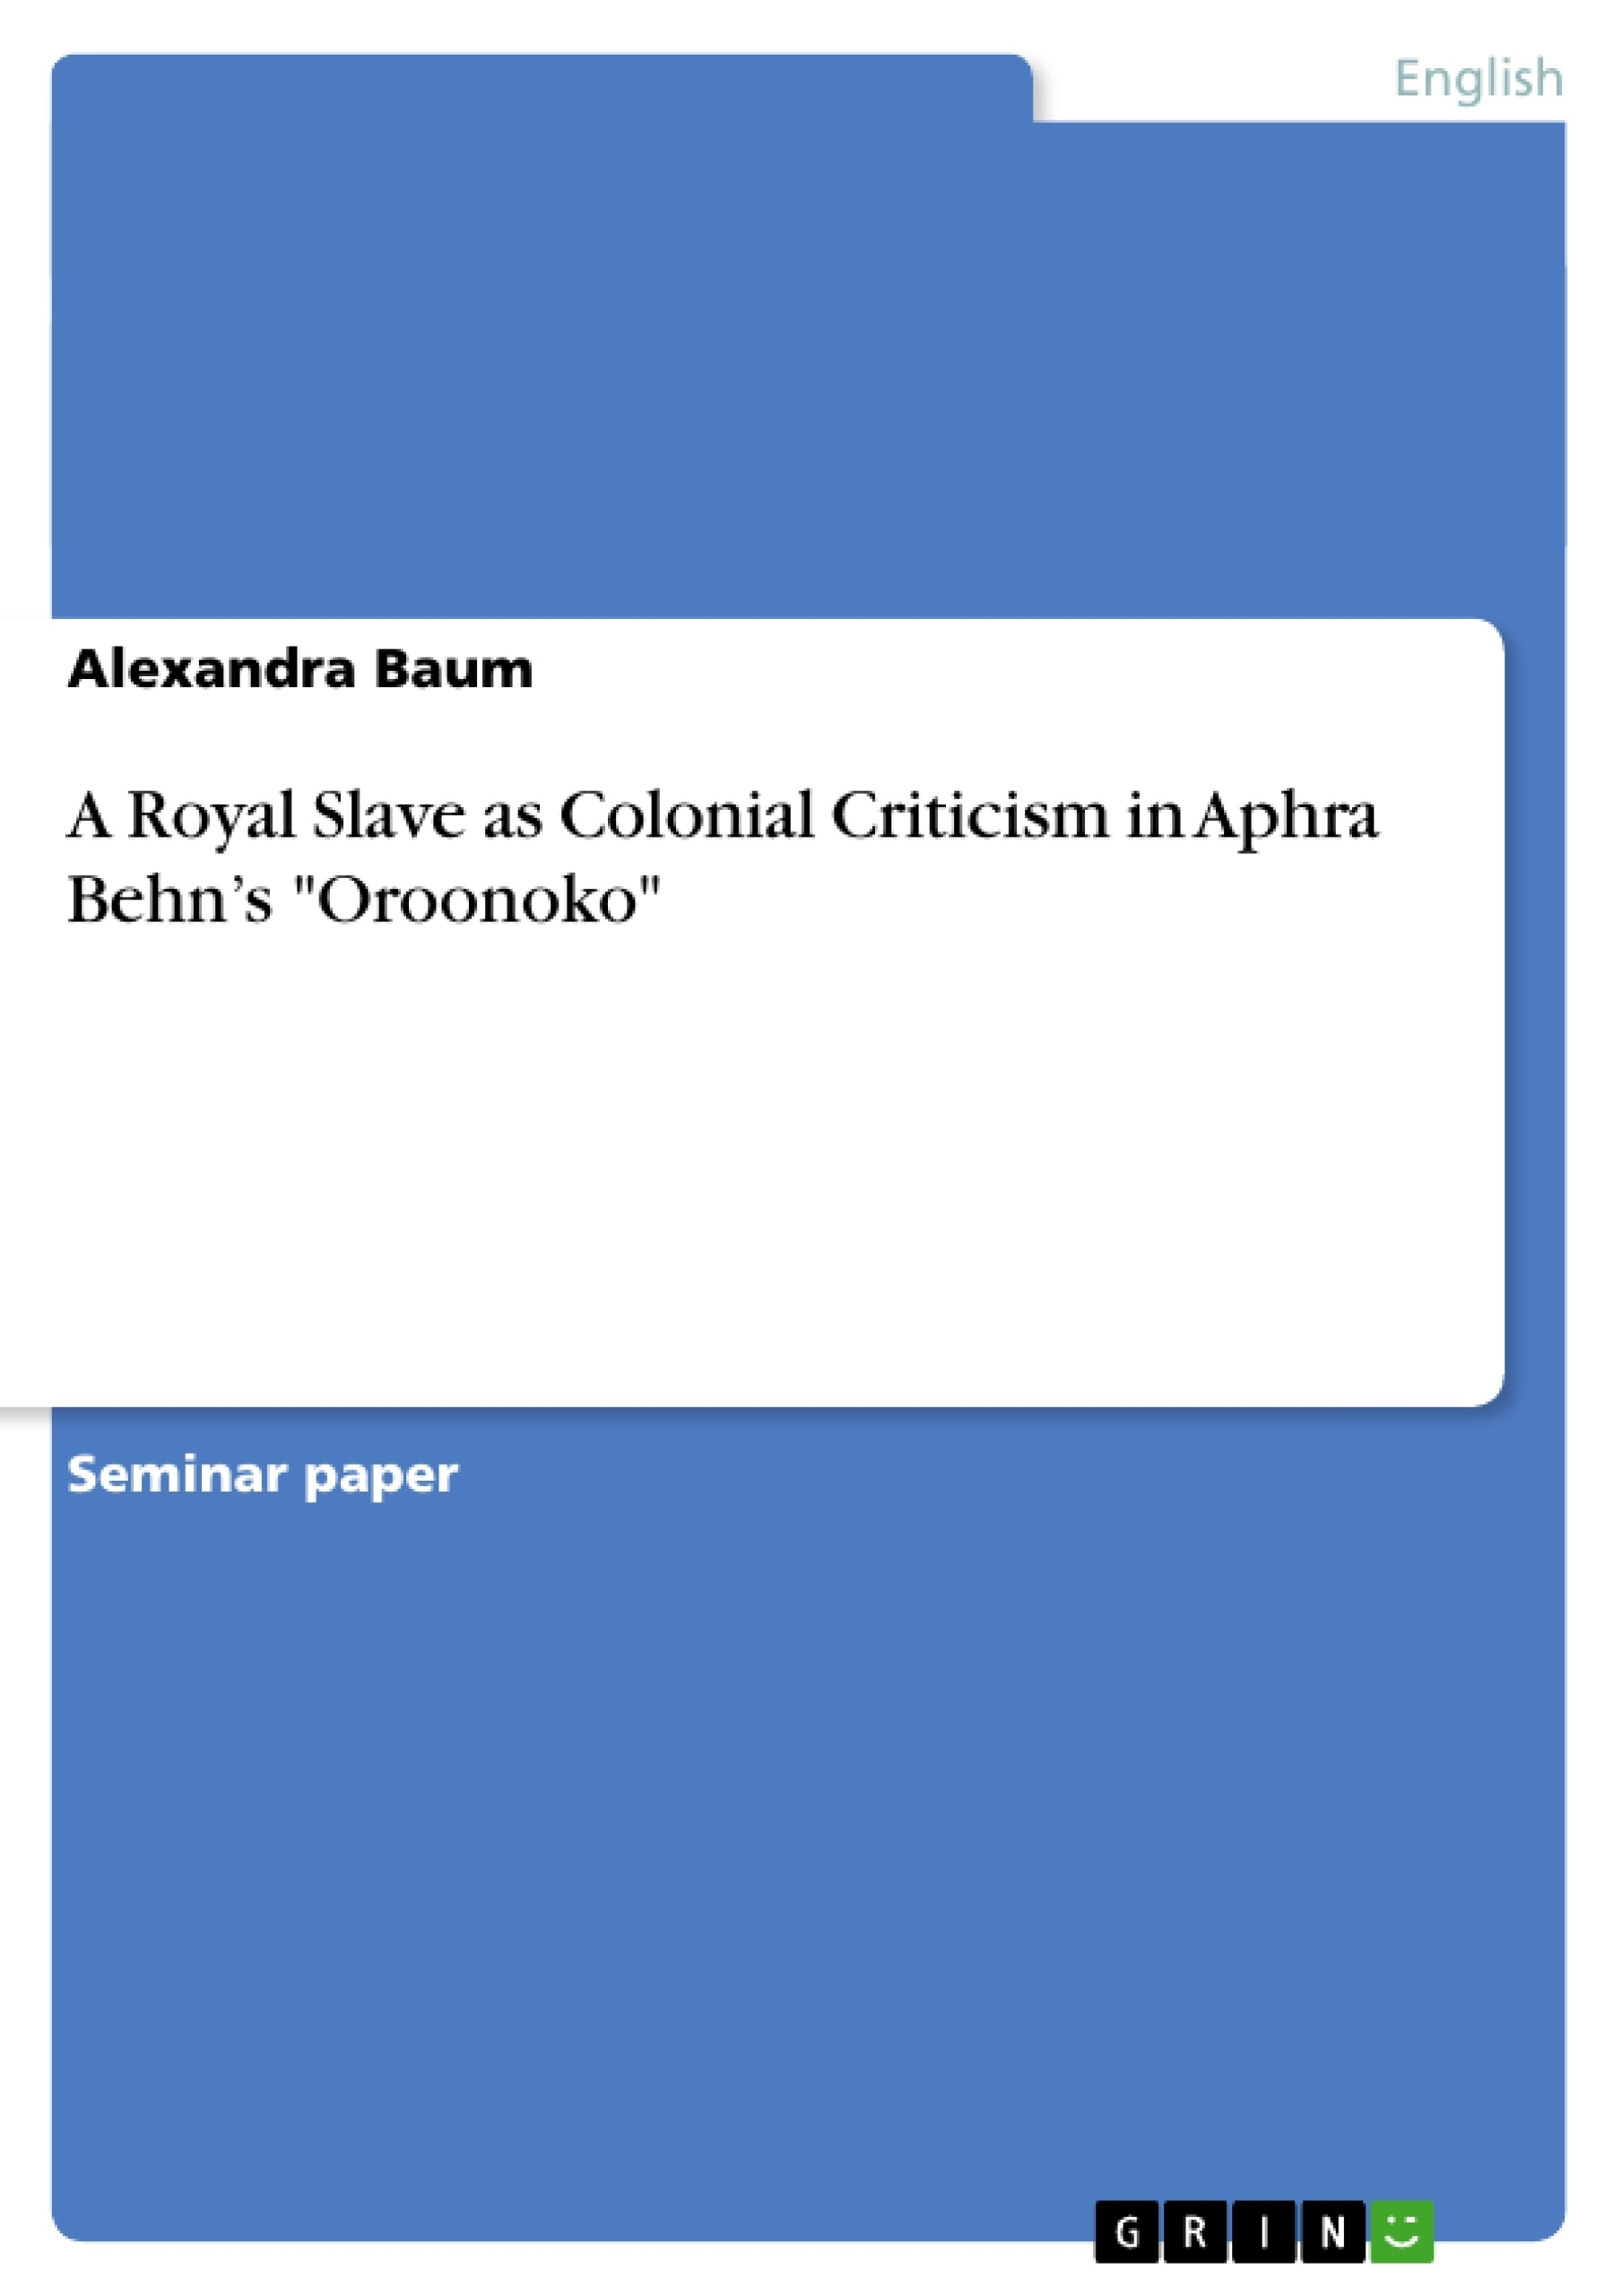 a royal slave as colonial criticism in aphra behn s oroonoko  upload your own papers earn money and win an iphone x